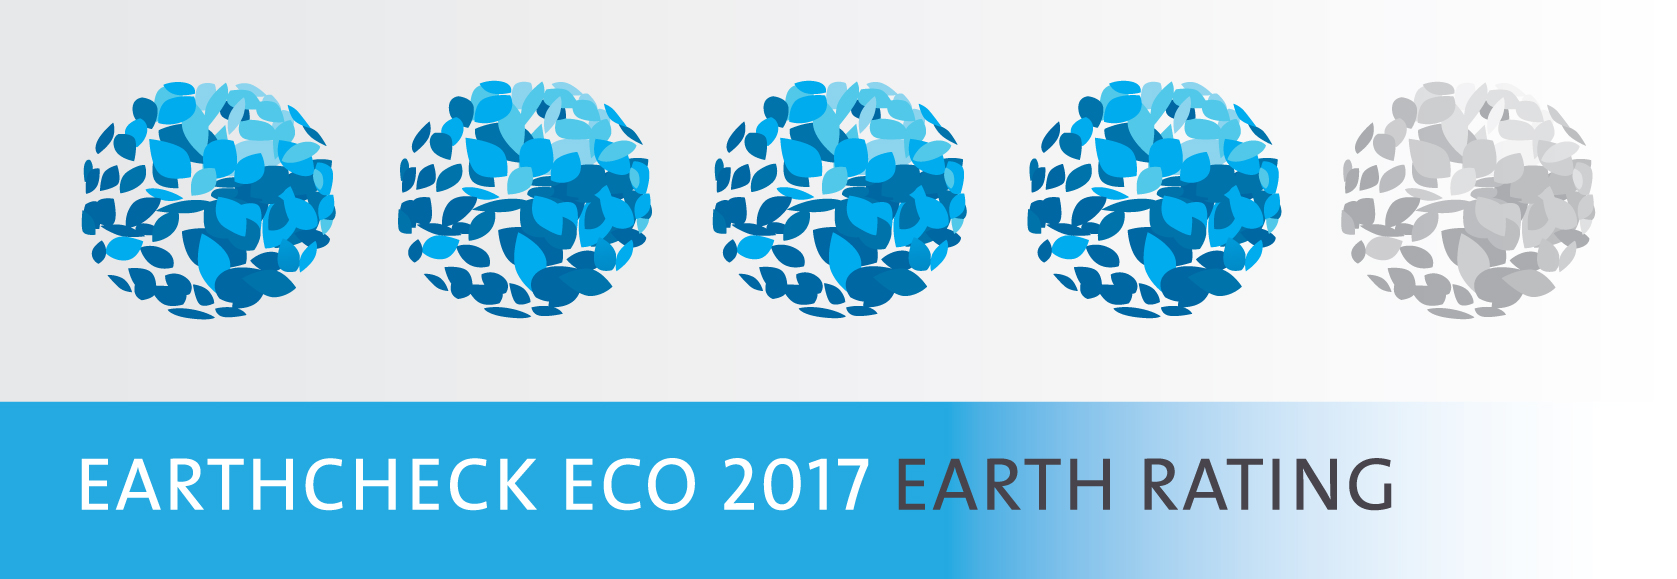 EarthCheck-Eco-rating-4-stars